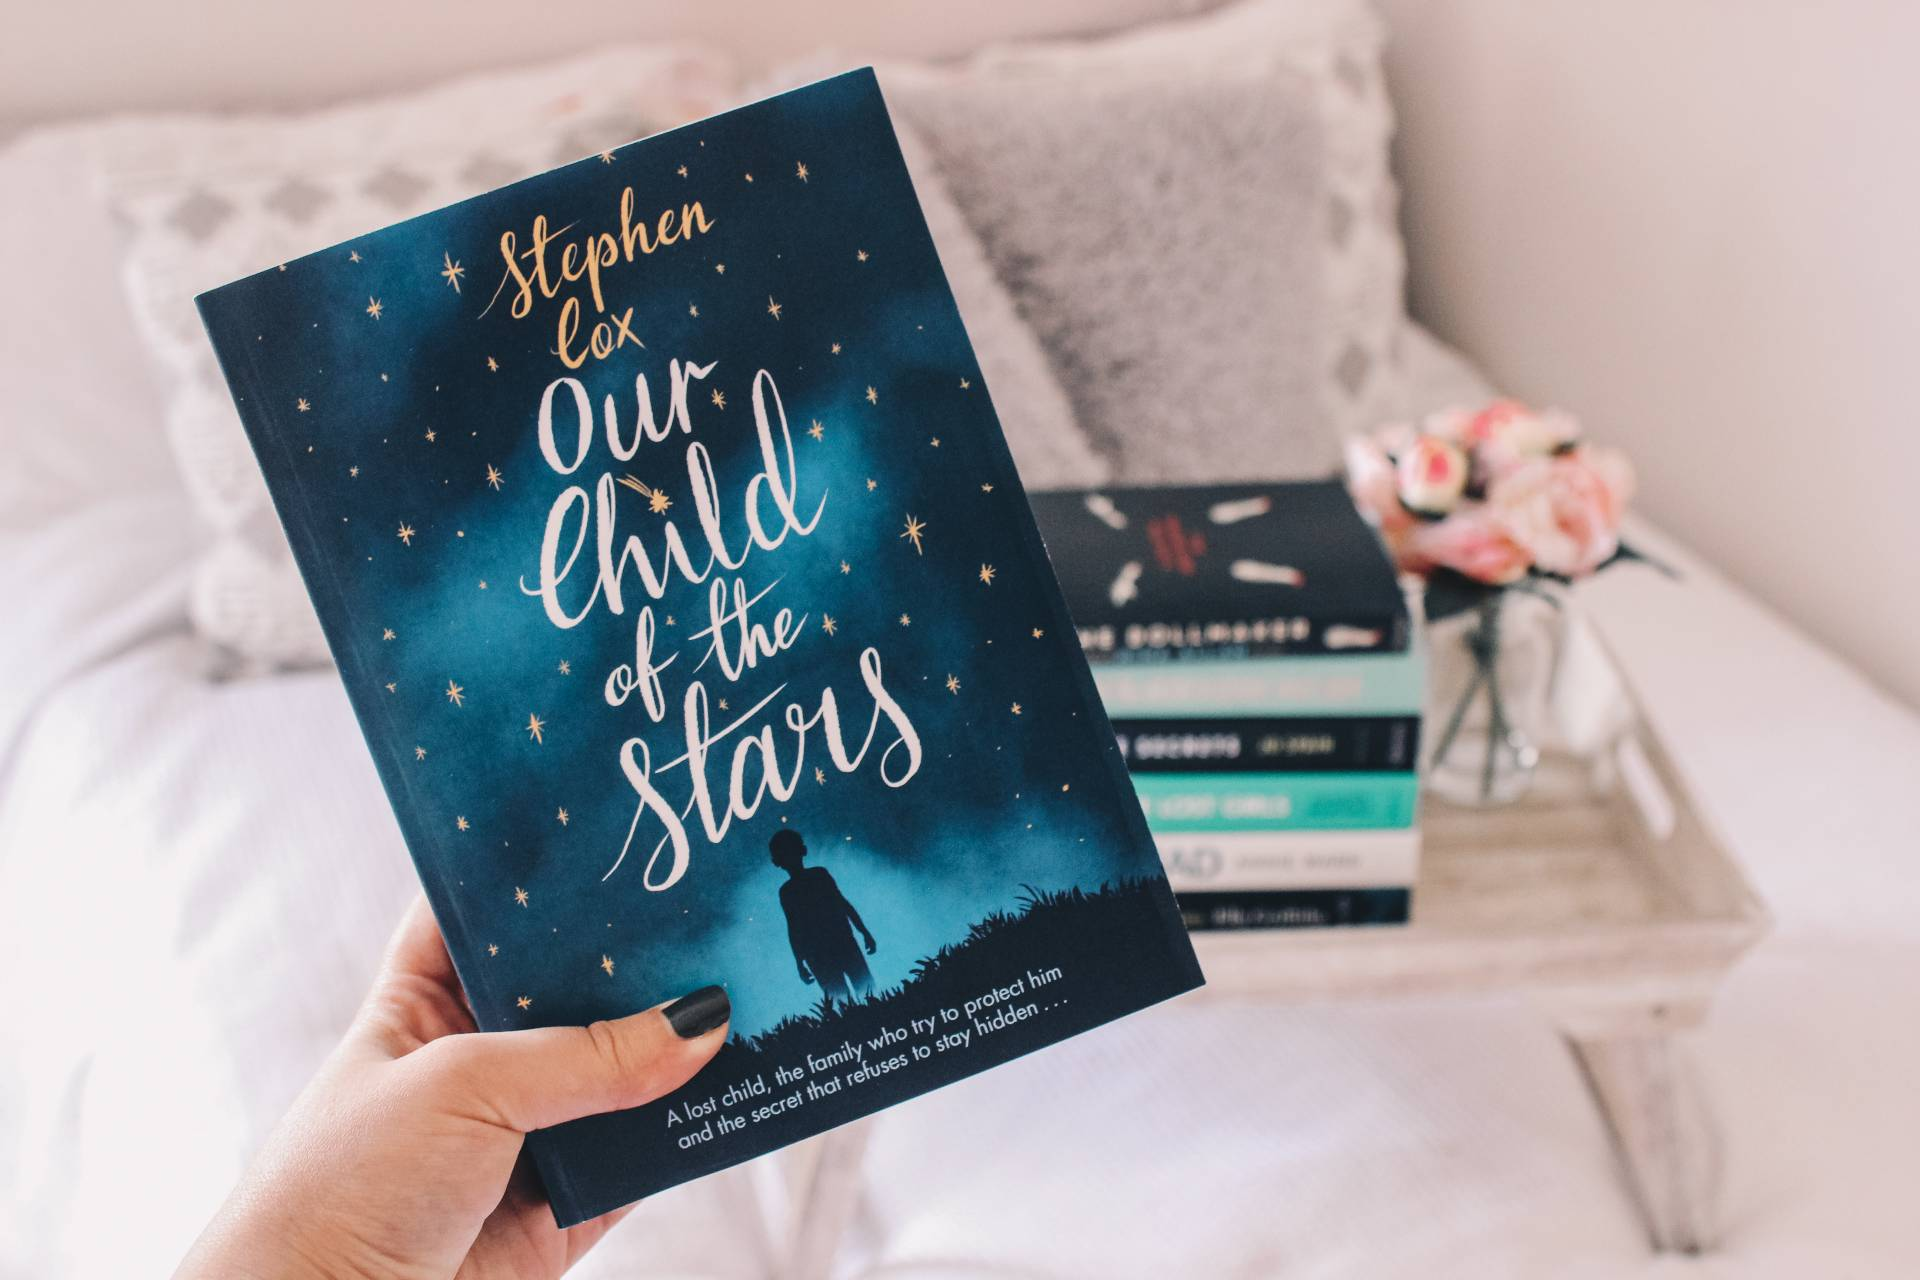 Our Child of the Stars Stephen Cox